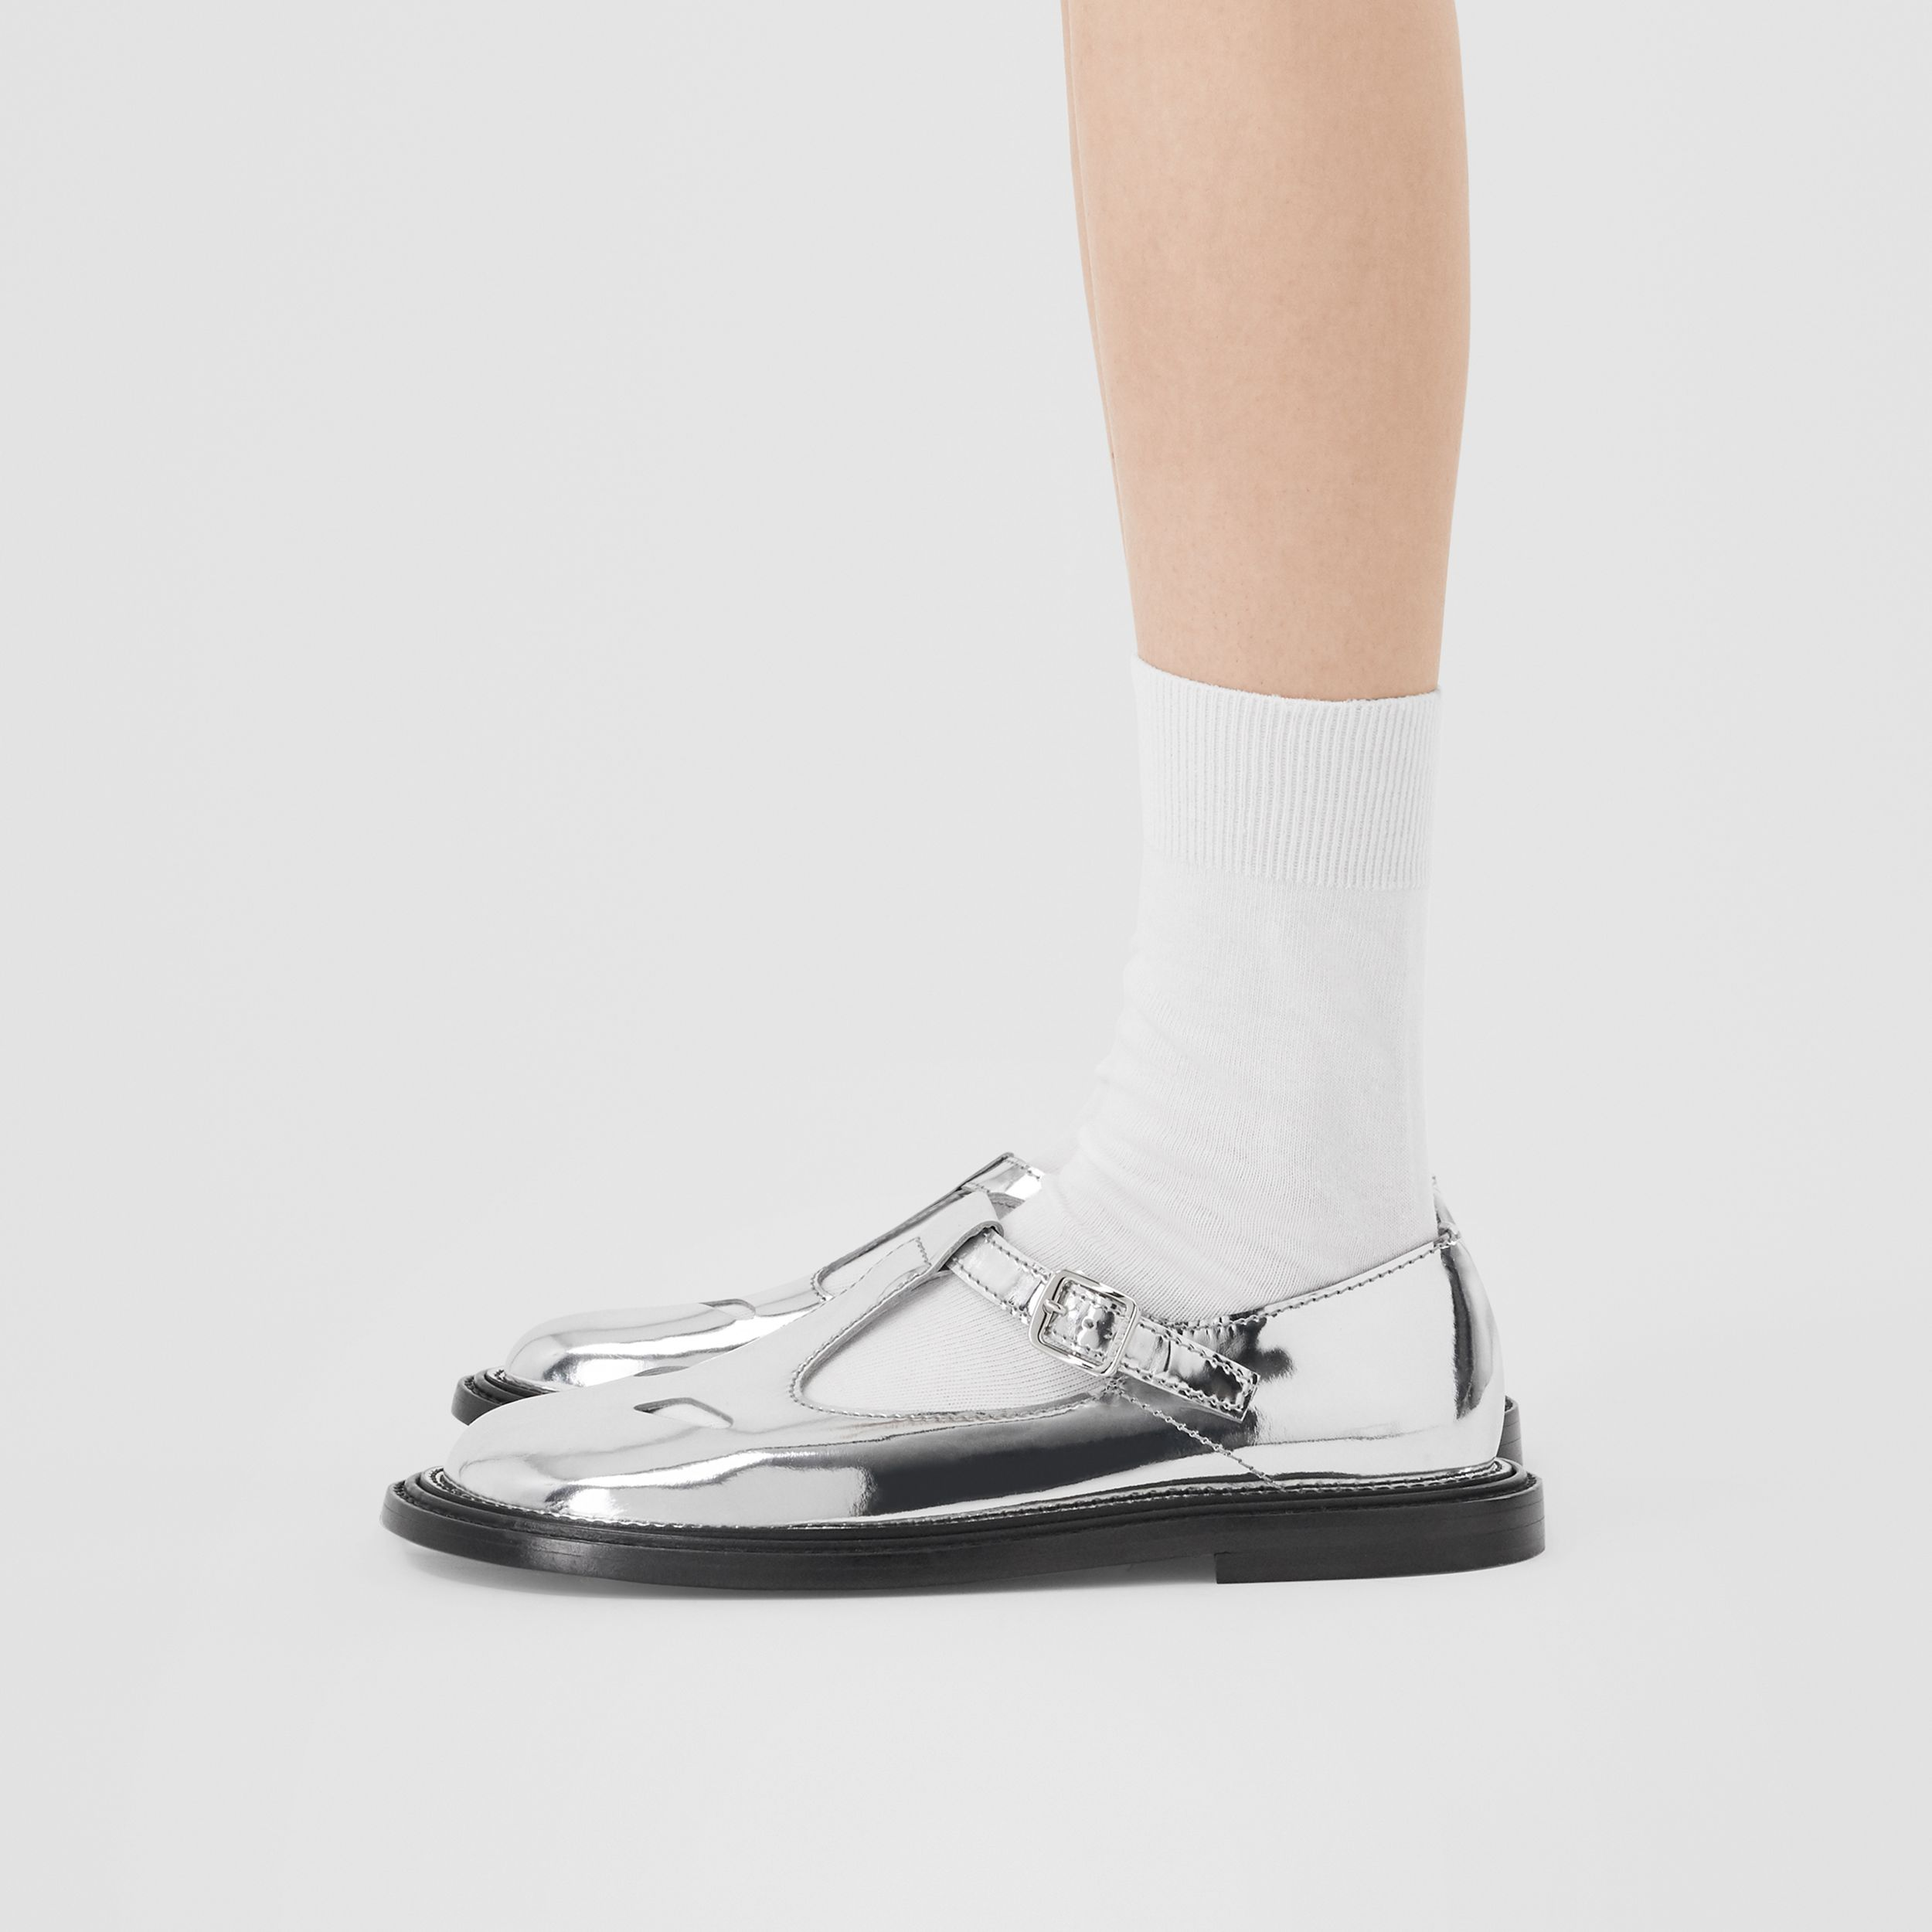 Metallic Patent Leather T-bar Shoes in Silver - Women | Burberry Canada - 3